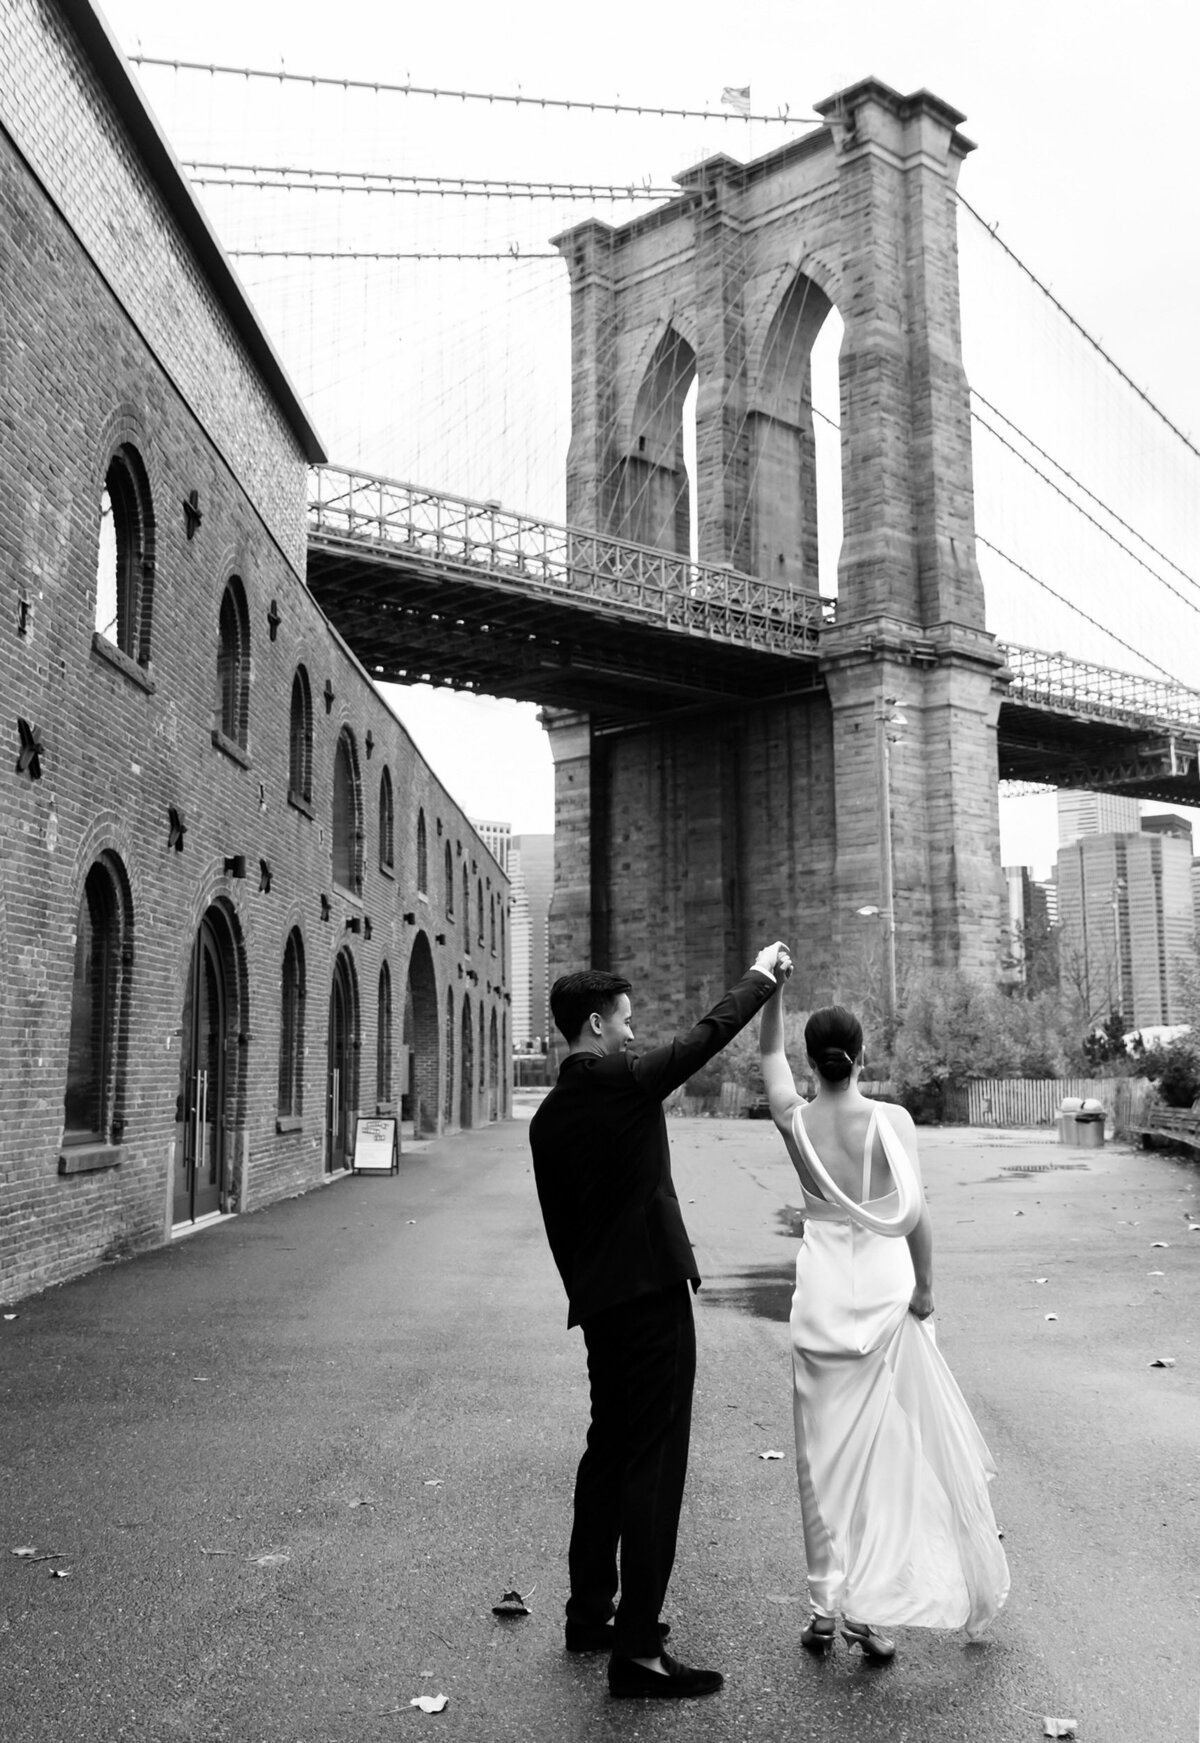 Dumbo_Loft_0331_Cate_Bryan_Wedding_2125